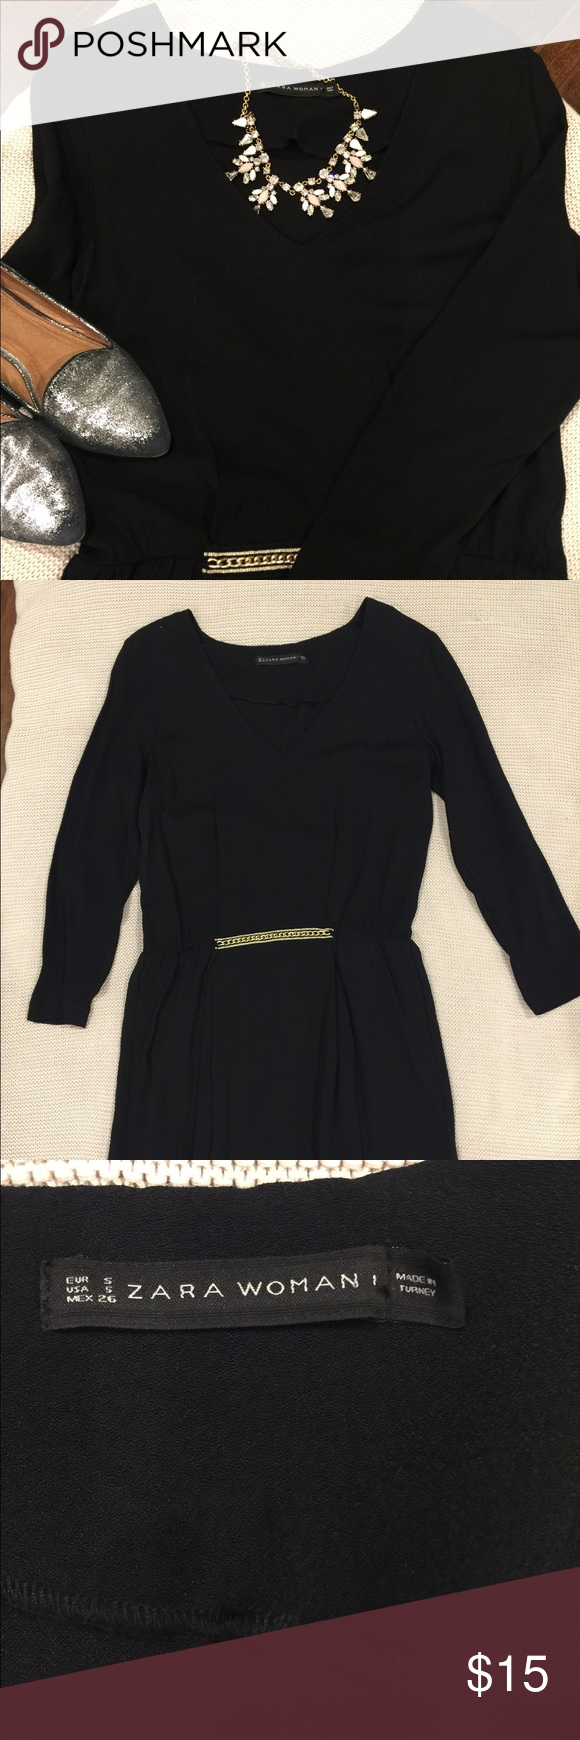 Zara long sleeve black dress sz s elastic waist zara dresses and